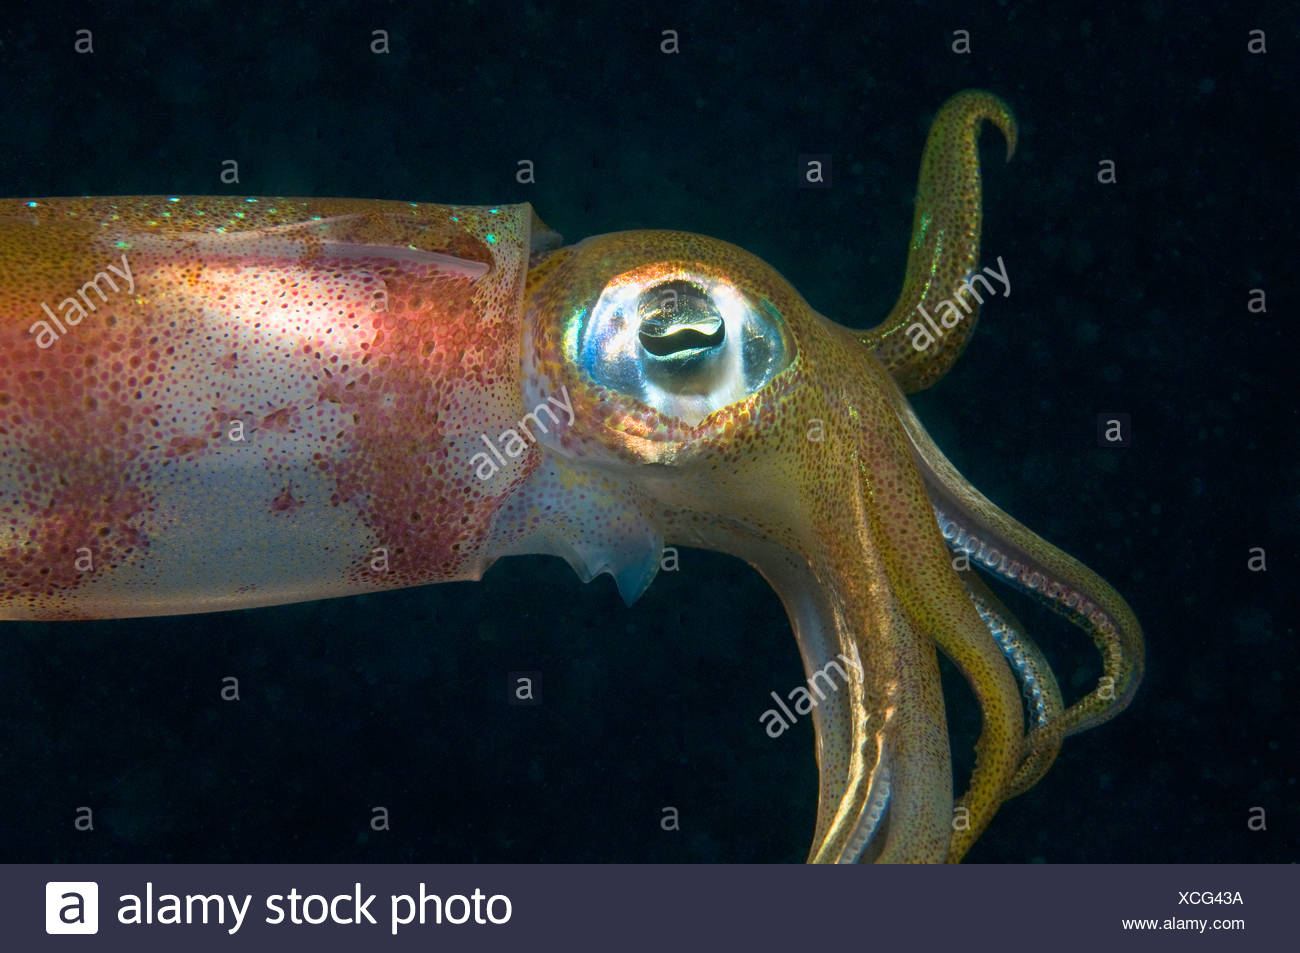 Egypt, Red Sea, Bigfin Reef Squid (Sepioteuthis lessoniana), side view, close-up - Stock Image